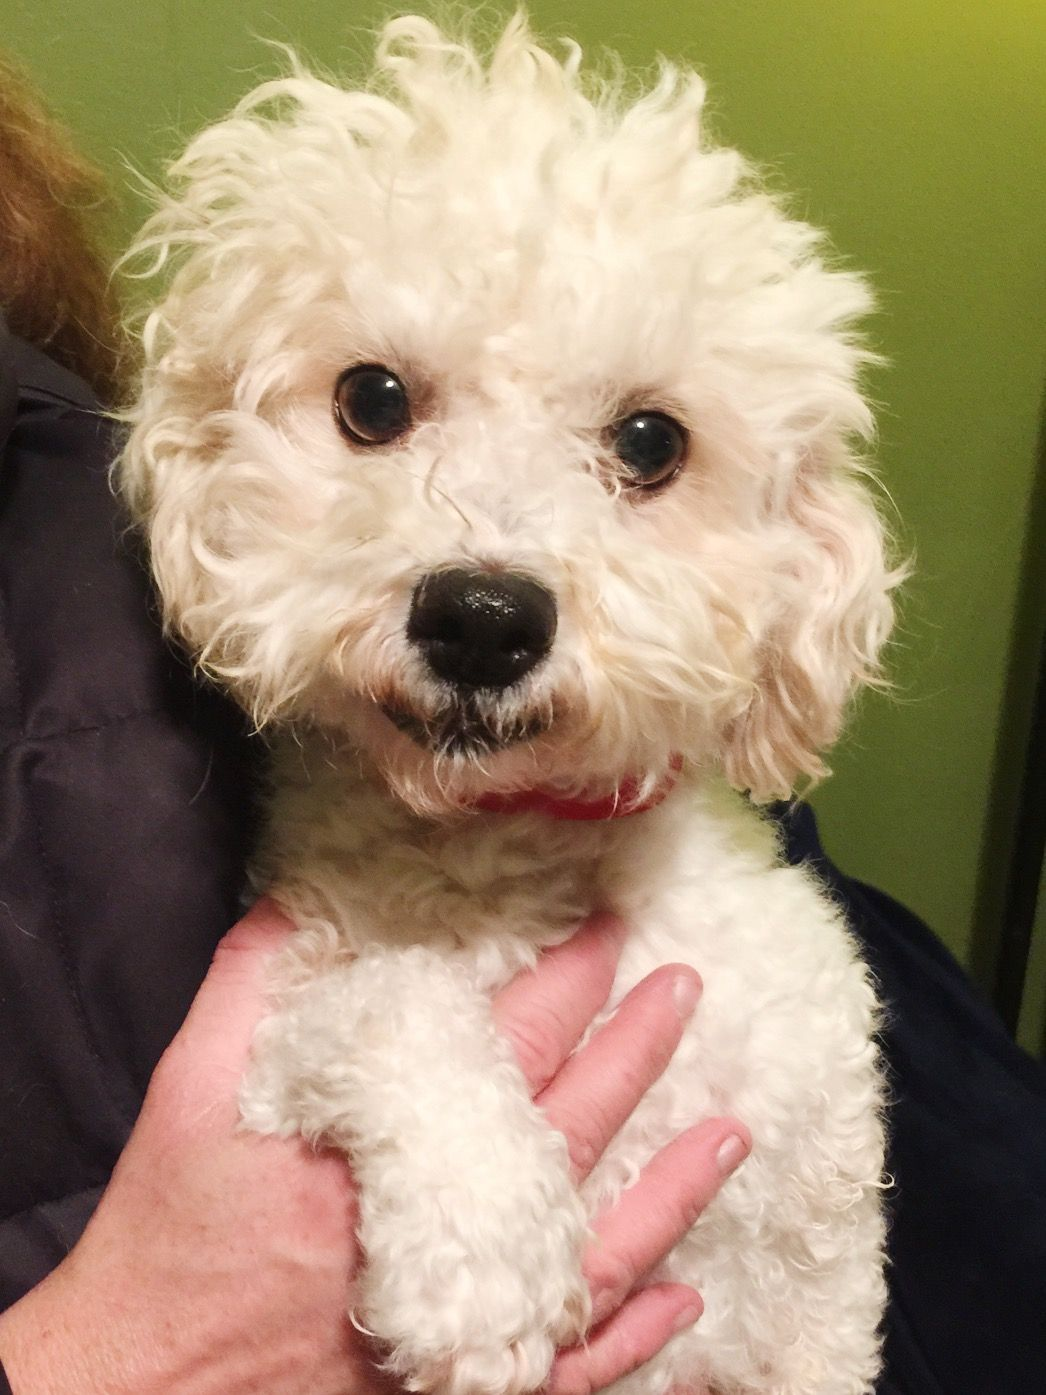 Bichon Frise Dog For Adoption In St Louis Park Mn Adn 406696 On